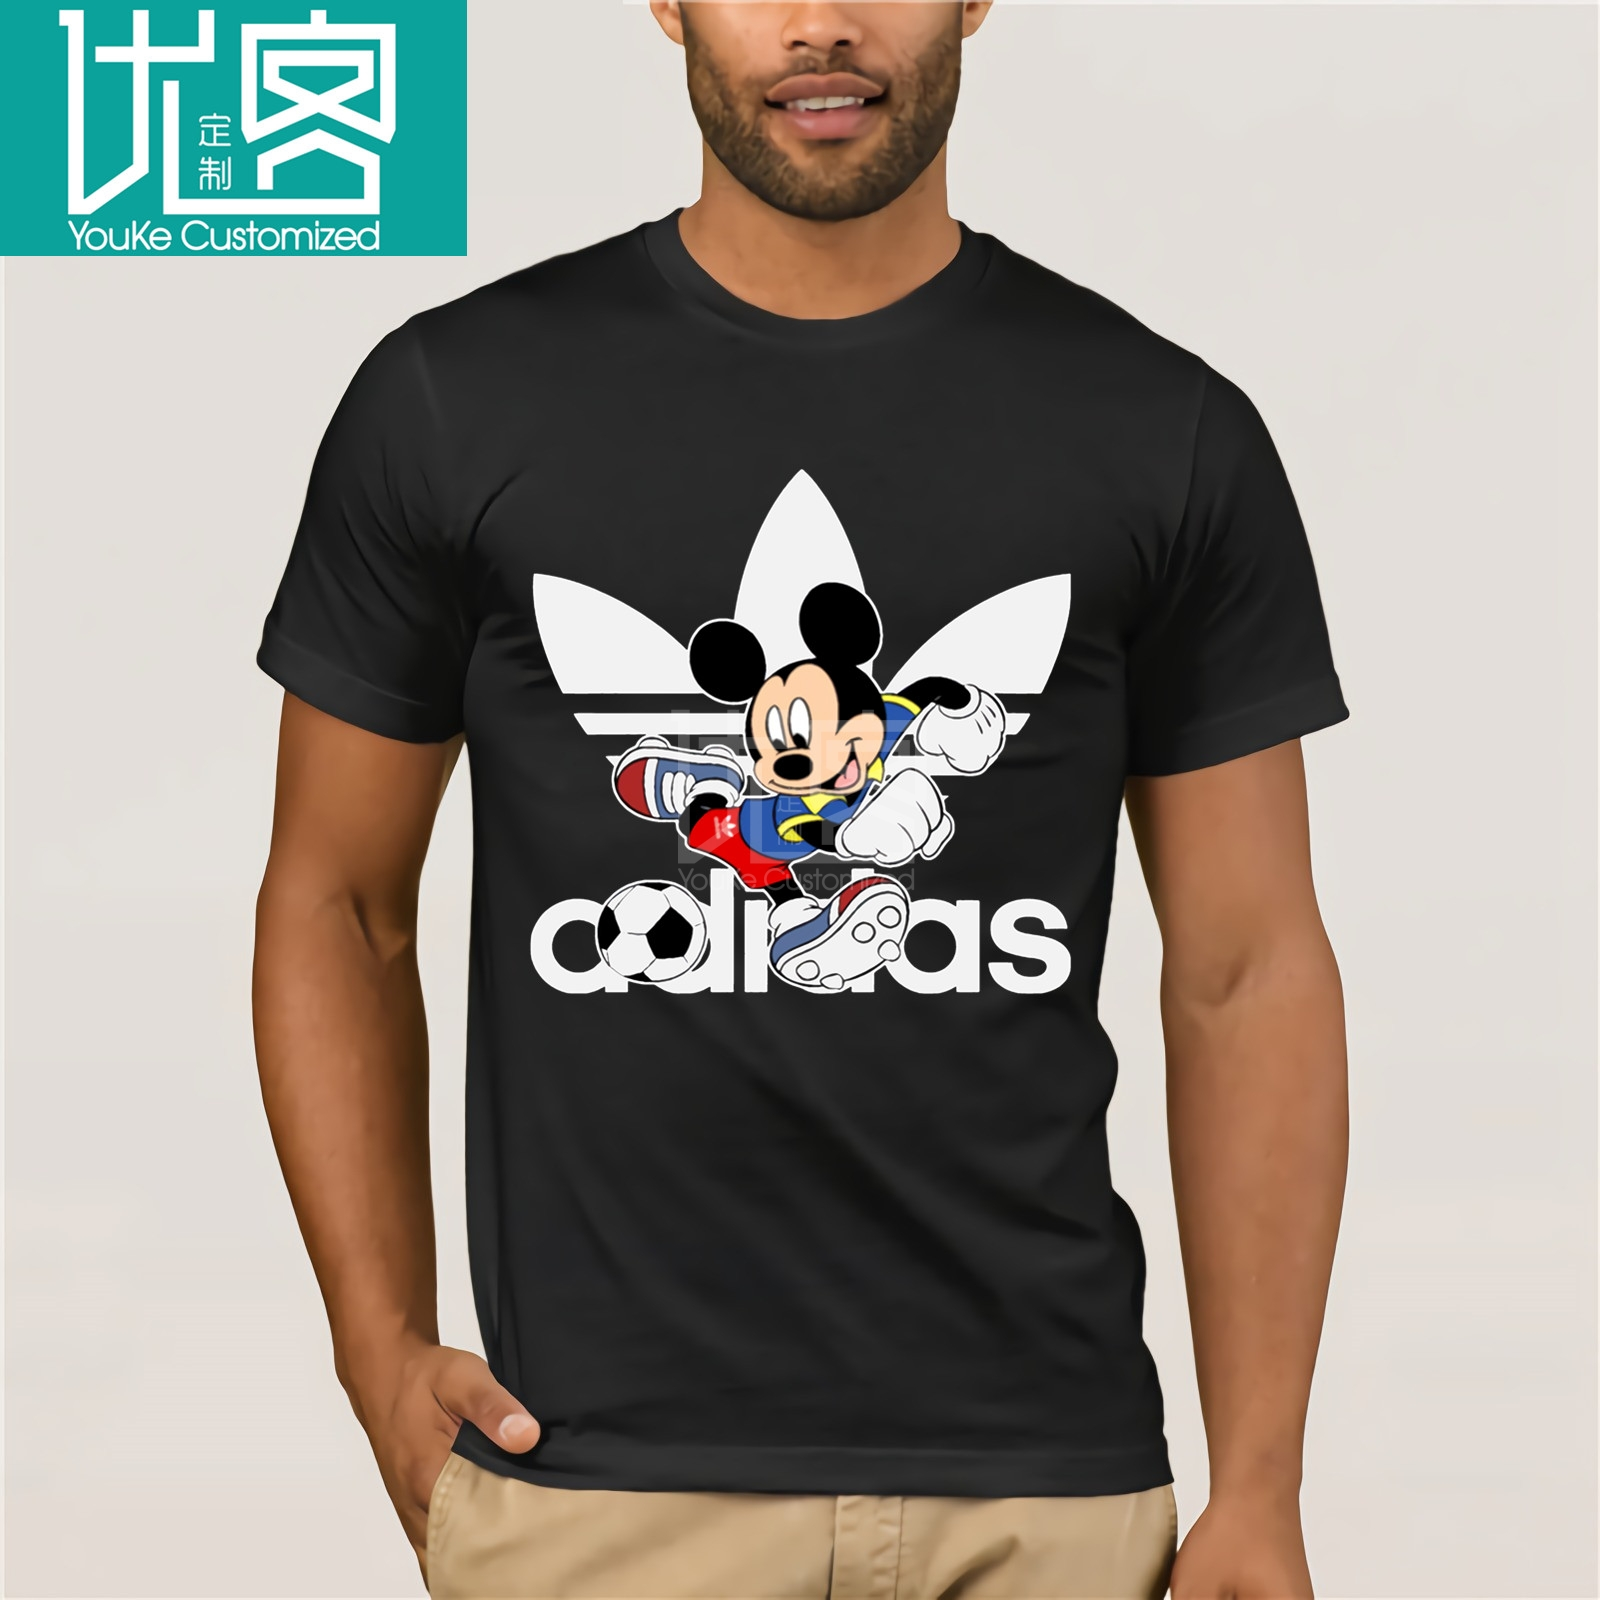 Football Mickey  Disn Sports Logo T-Shirts Handsome Mickey Print For Men's Cool Funny Mickey Tshirt